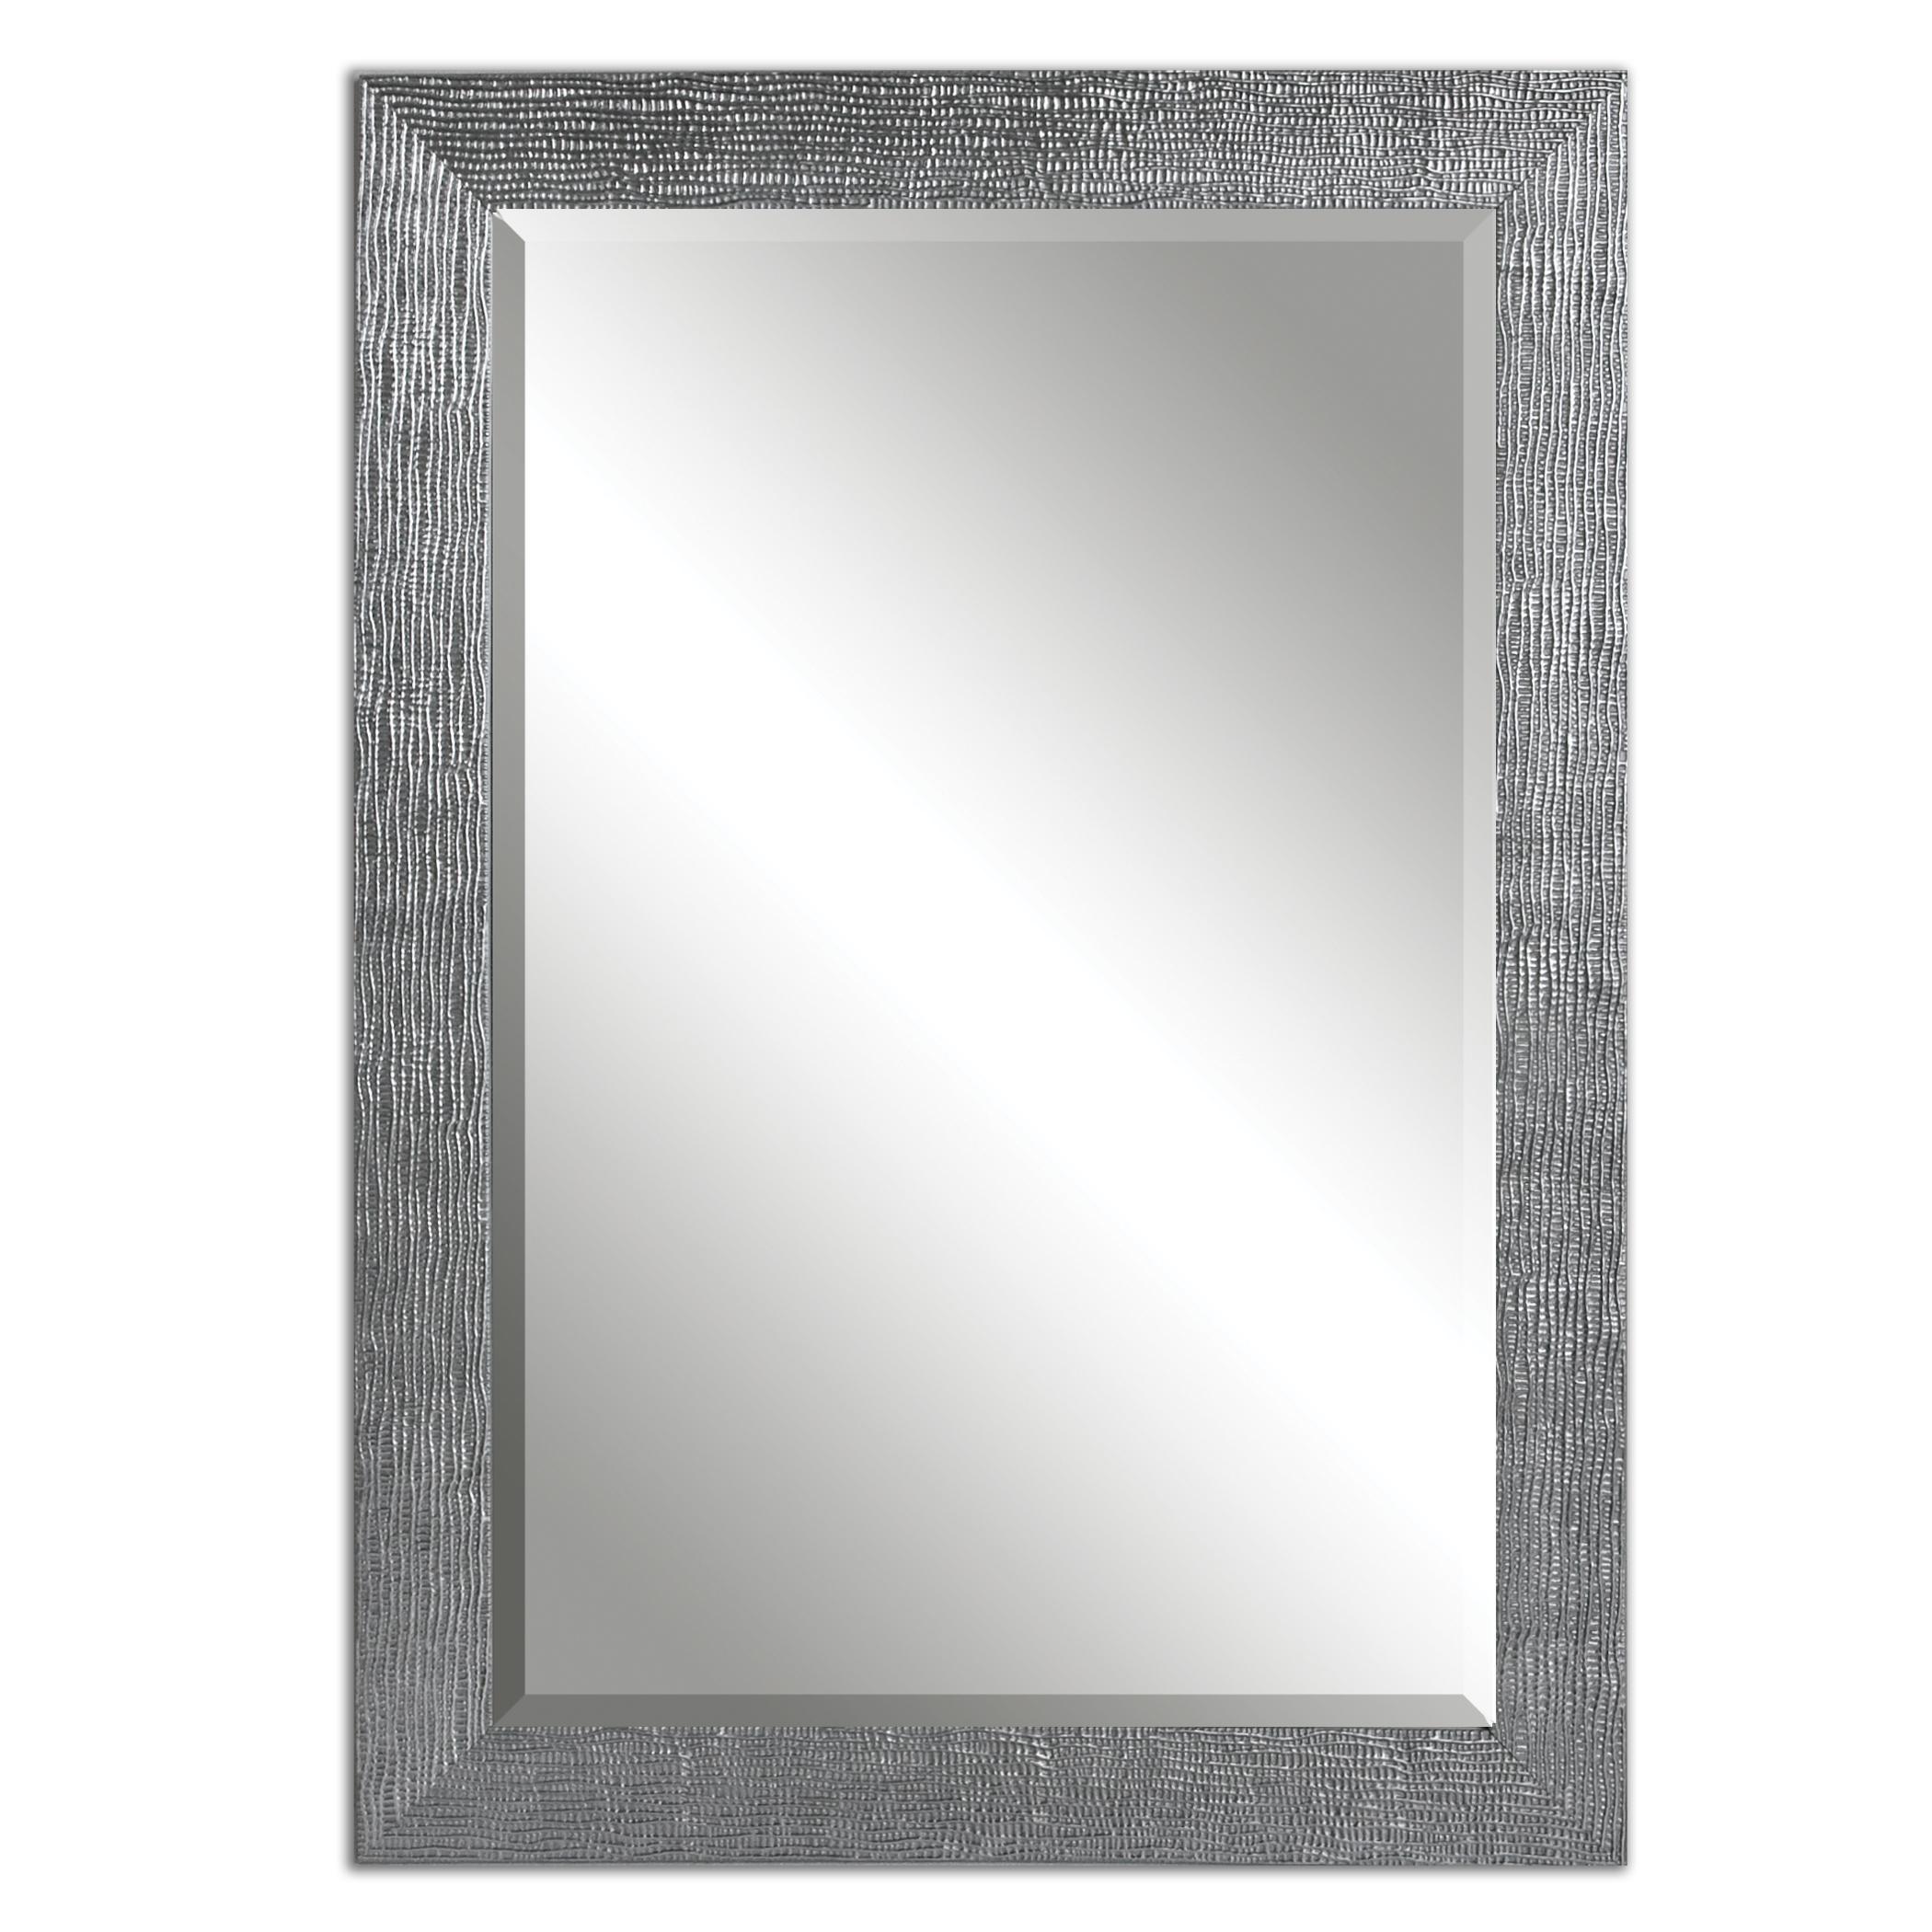 Uttermost Mirrors Tarek Silver Mirror - Item Number: 14604